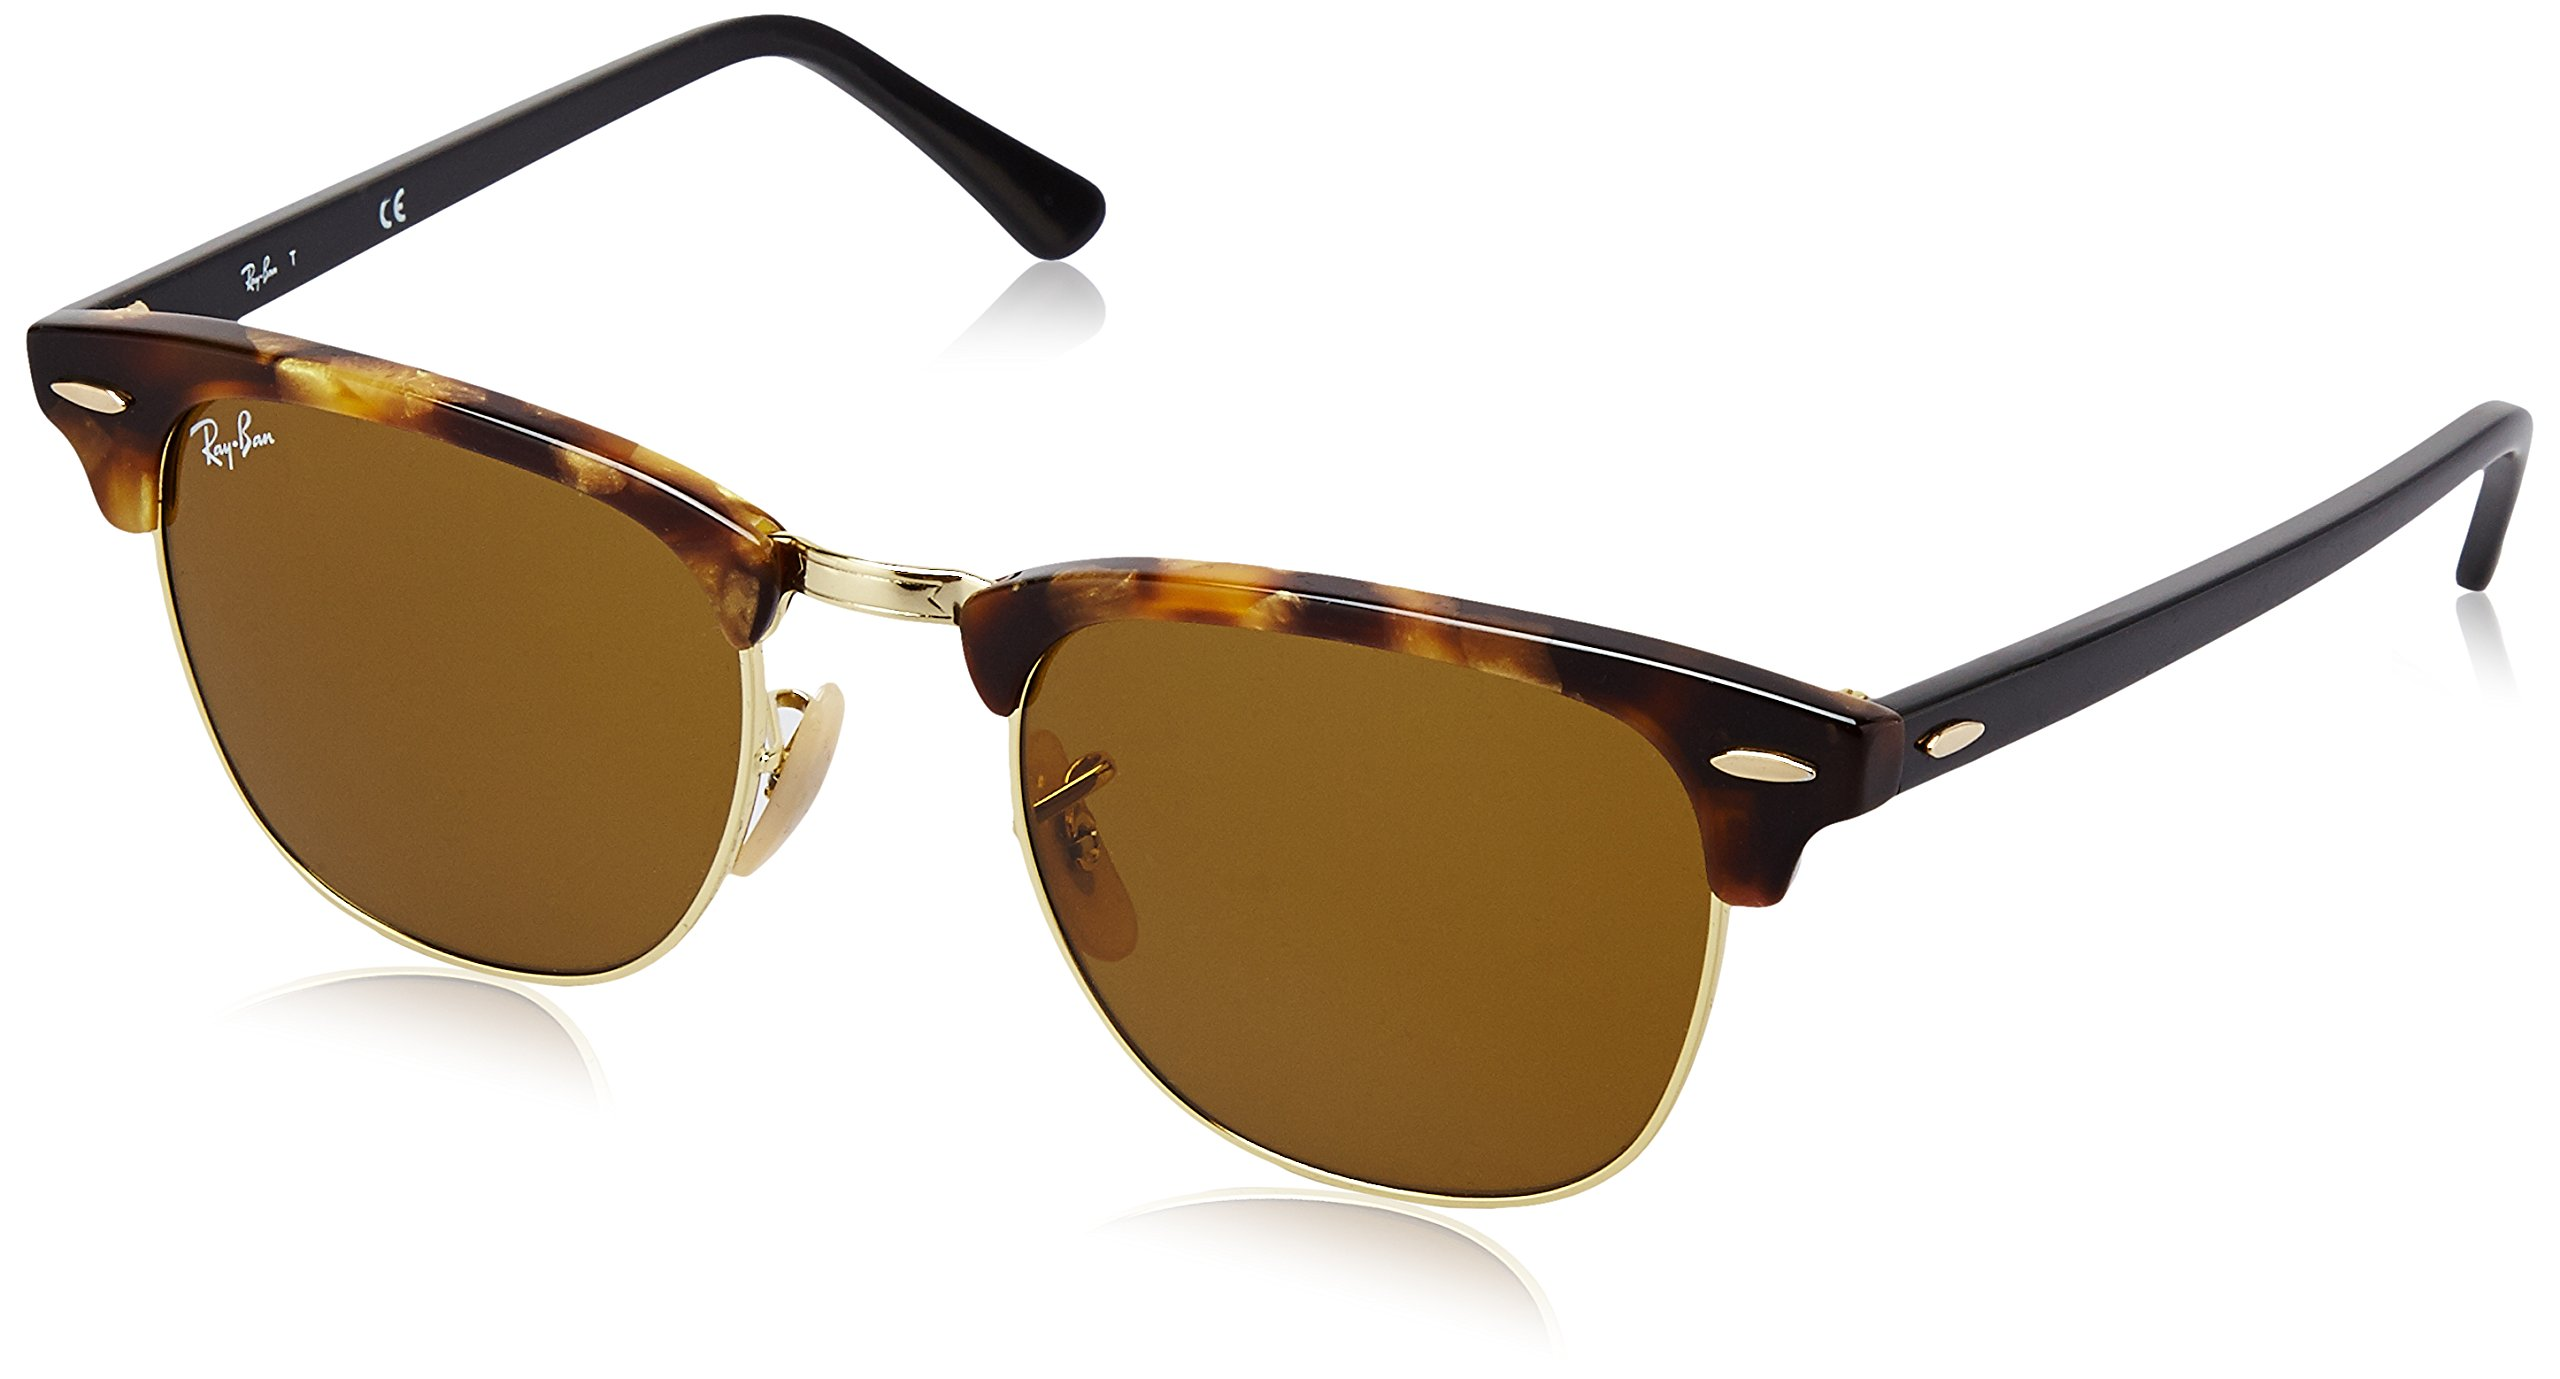 Ray-Ban CLUBMASTER - SPOTTED BROWN HAVANA Frame BROWN Lenses 51mm Non-Polarized by Ray-Ban